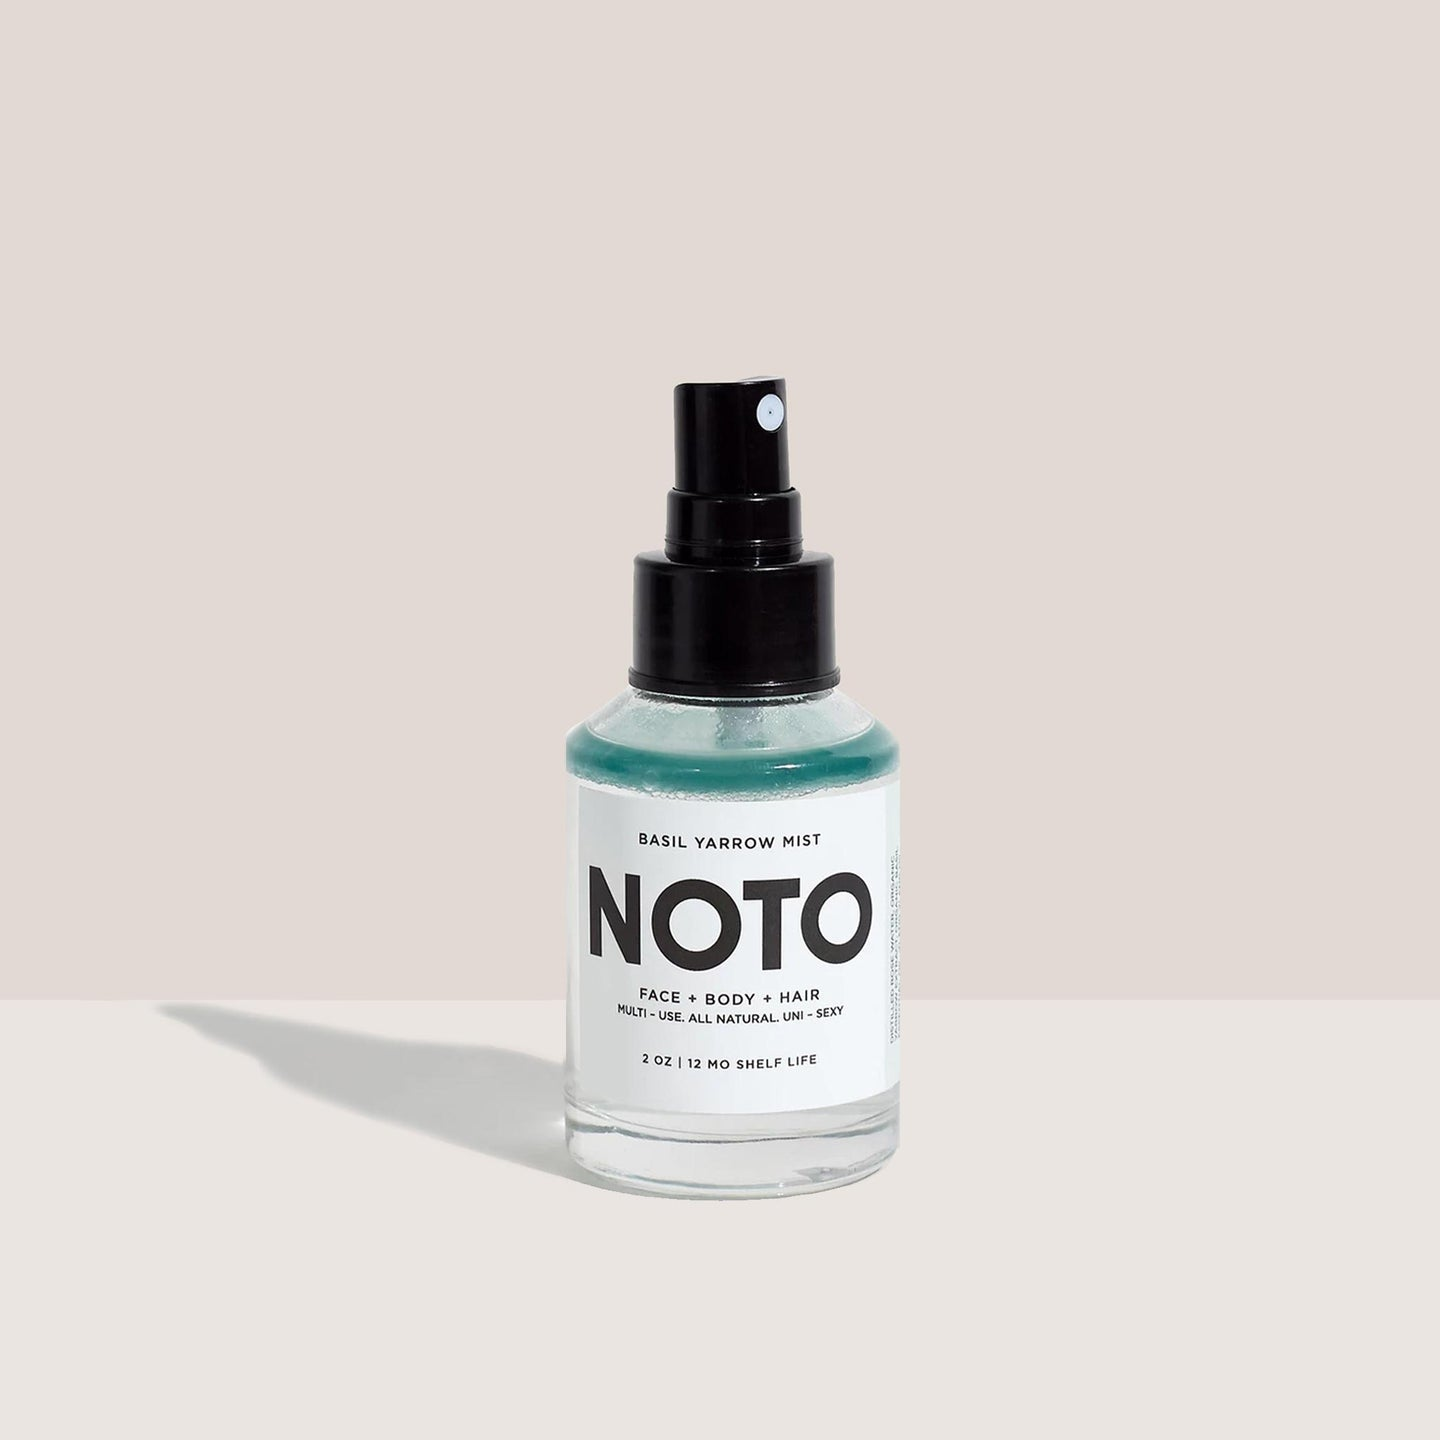 Noto Botanics - Basil Yarrow Mist, available at LCD.